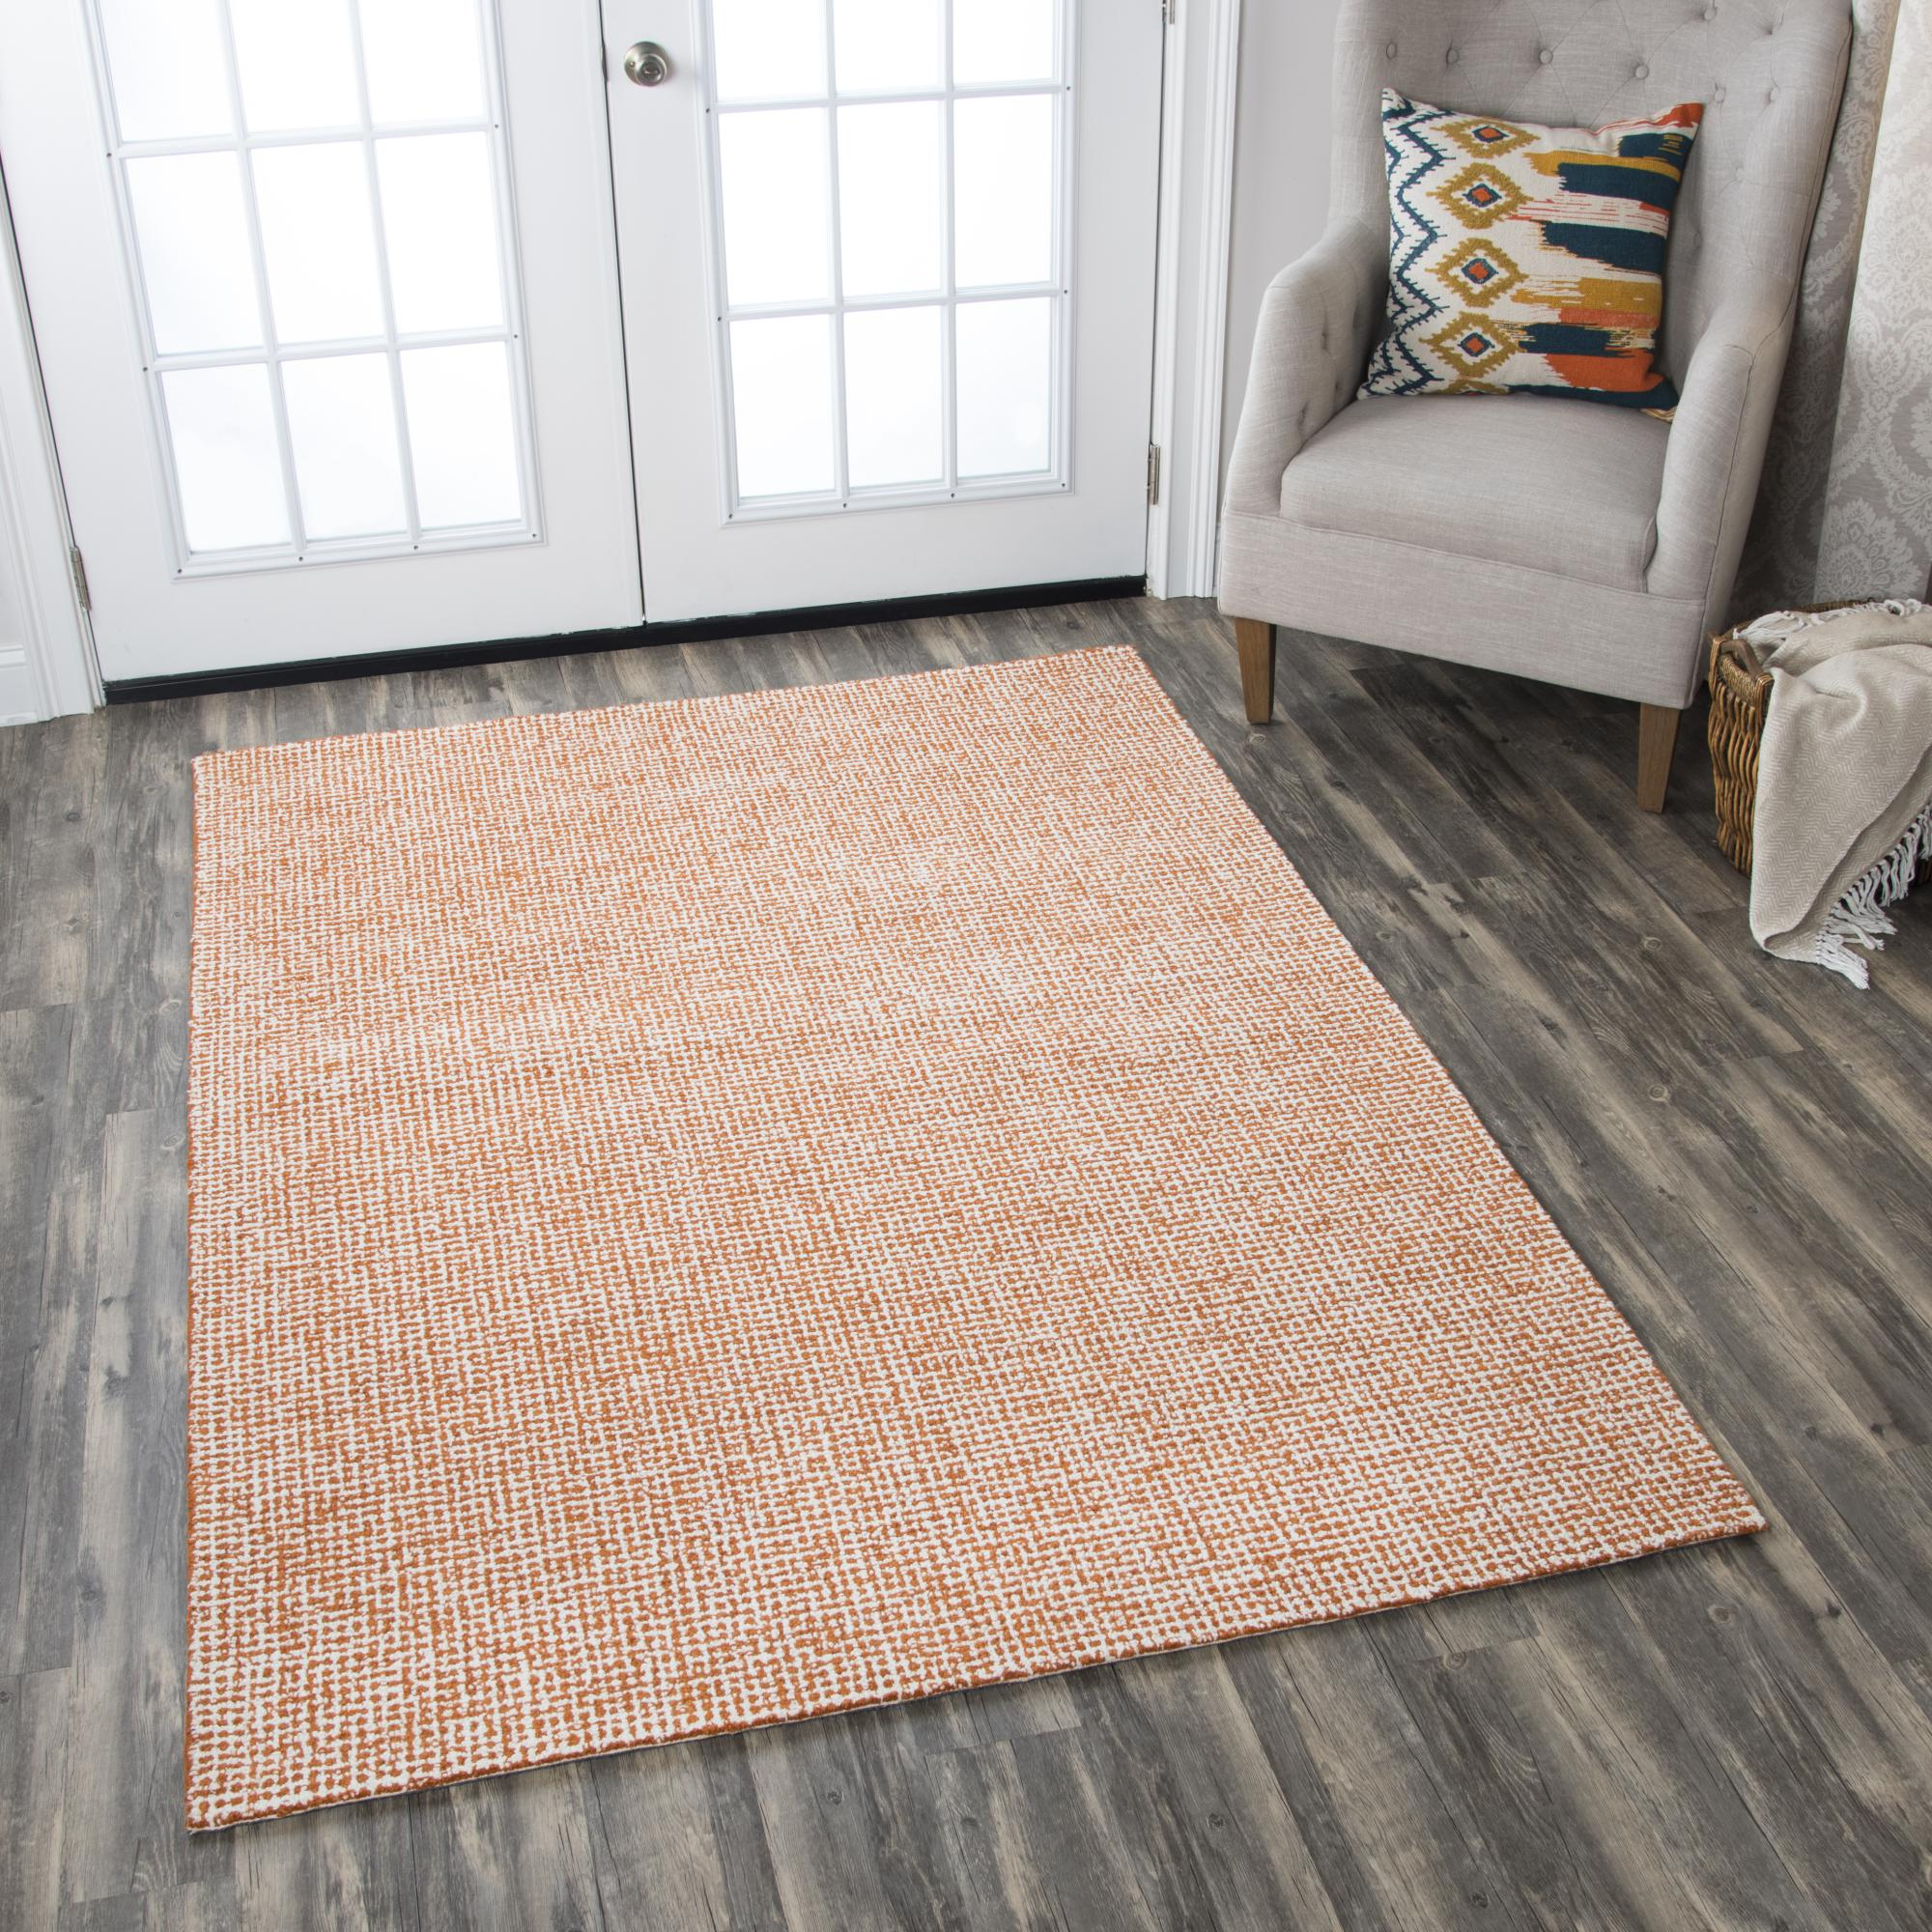 Rizzy Home BR652A Orange 9' x 12' Hand-Tufted Area Rug